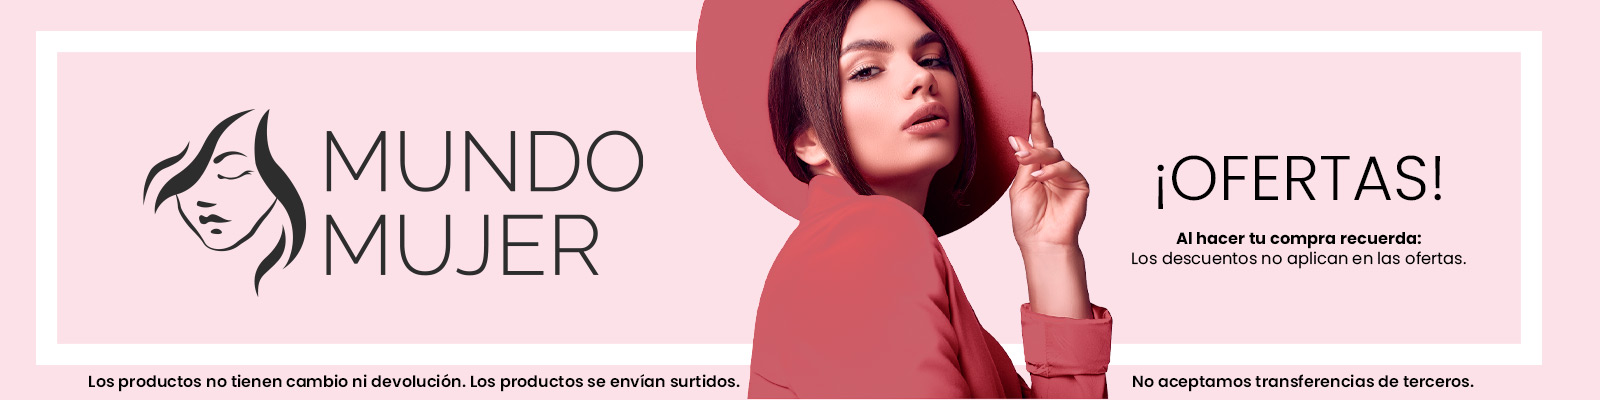 Banner OFERTAS M. MUJER.